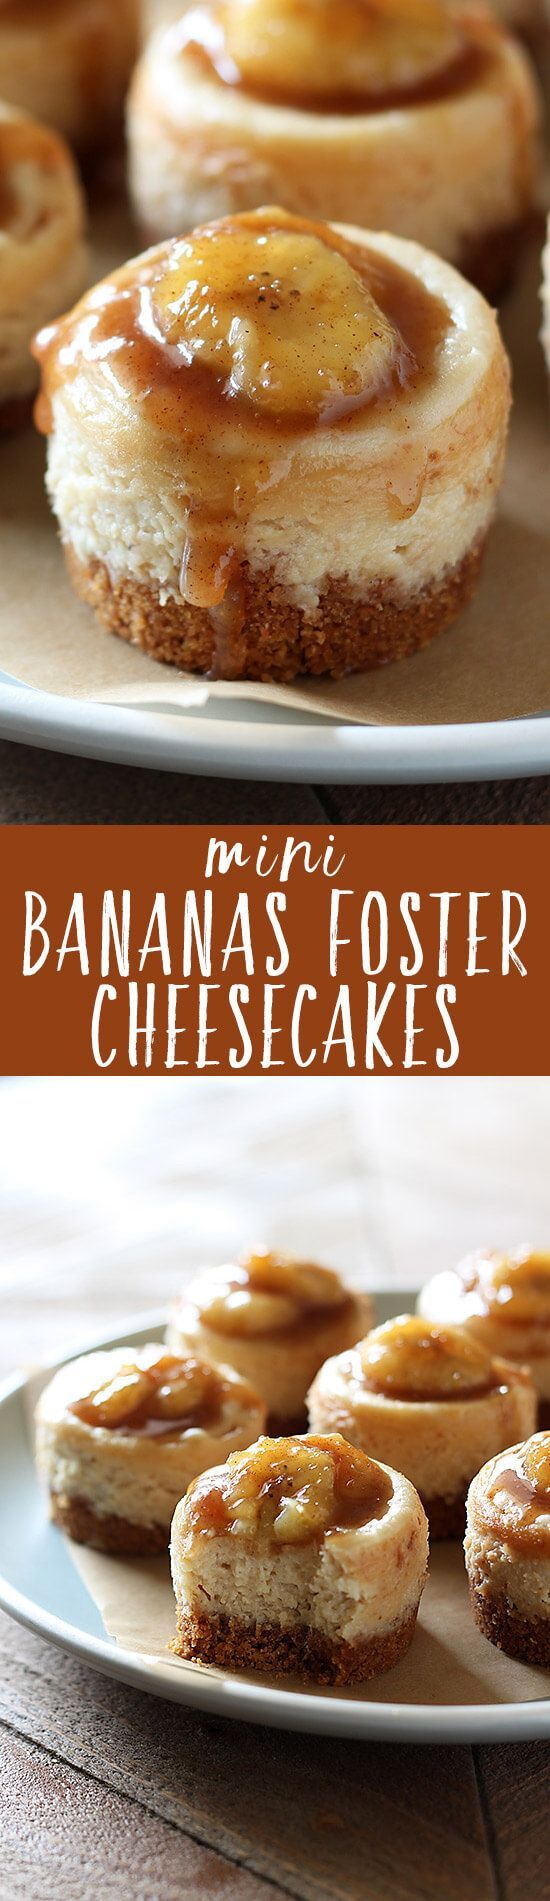 No need to visit a fancy restaurant to enjoy Bananas Foster! Mini Bananas Foster Cheesecakes have tons of caramelized banana flavor and luscious texture. Not to mention they're perfectly adorable!